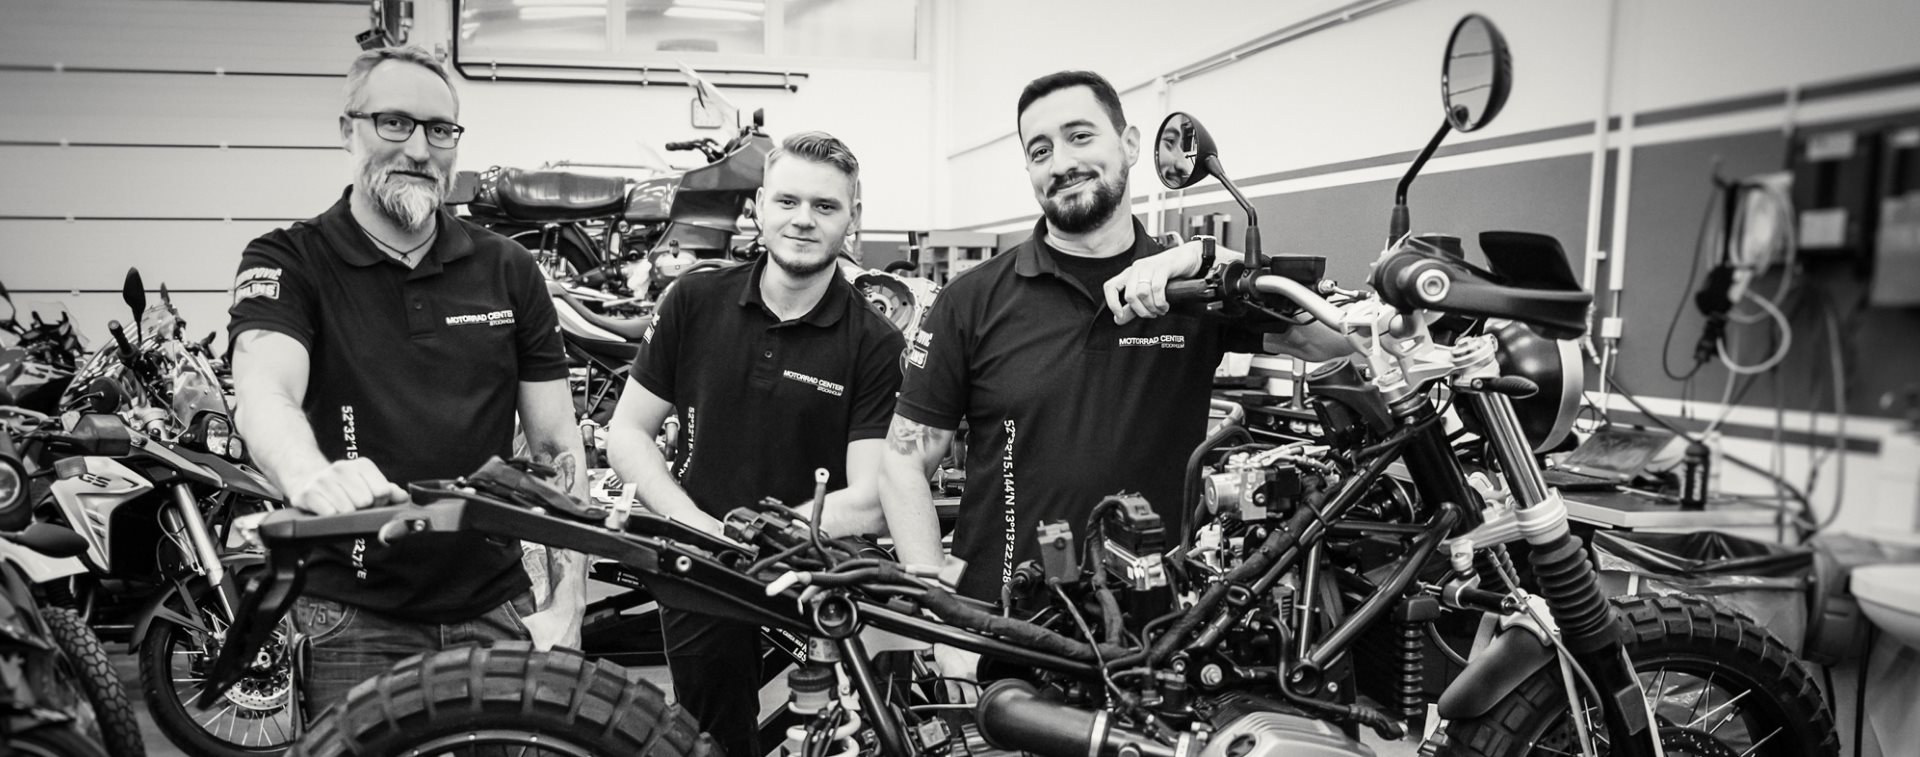 BMW Motorrad Dealer Build-Off 2019!